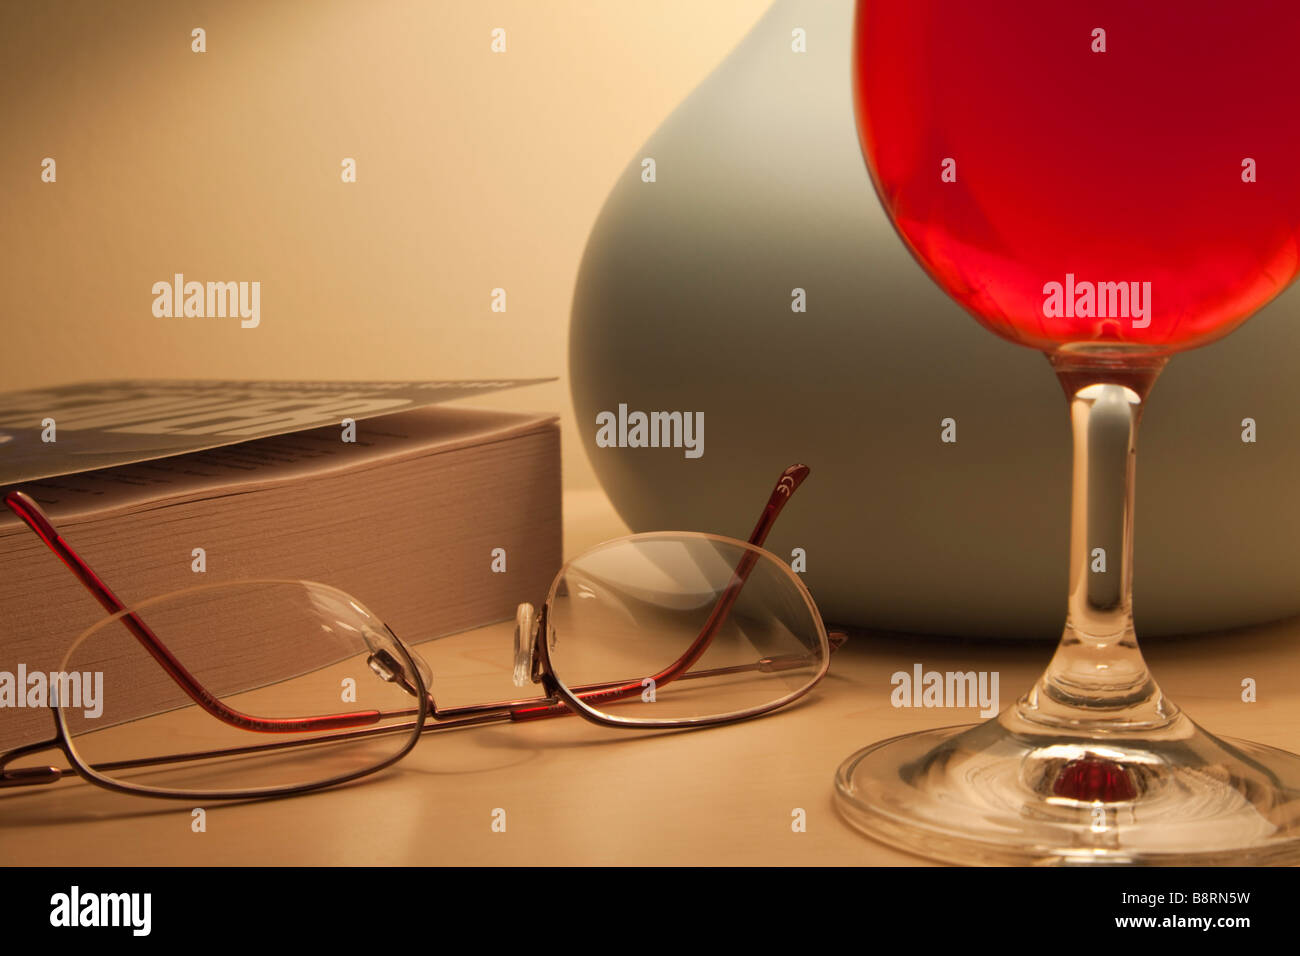 Everyday homely hygge scene with a glass of red wine by lit bedside table lamp paperback book and reading glasses - Stock Image